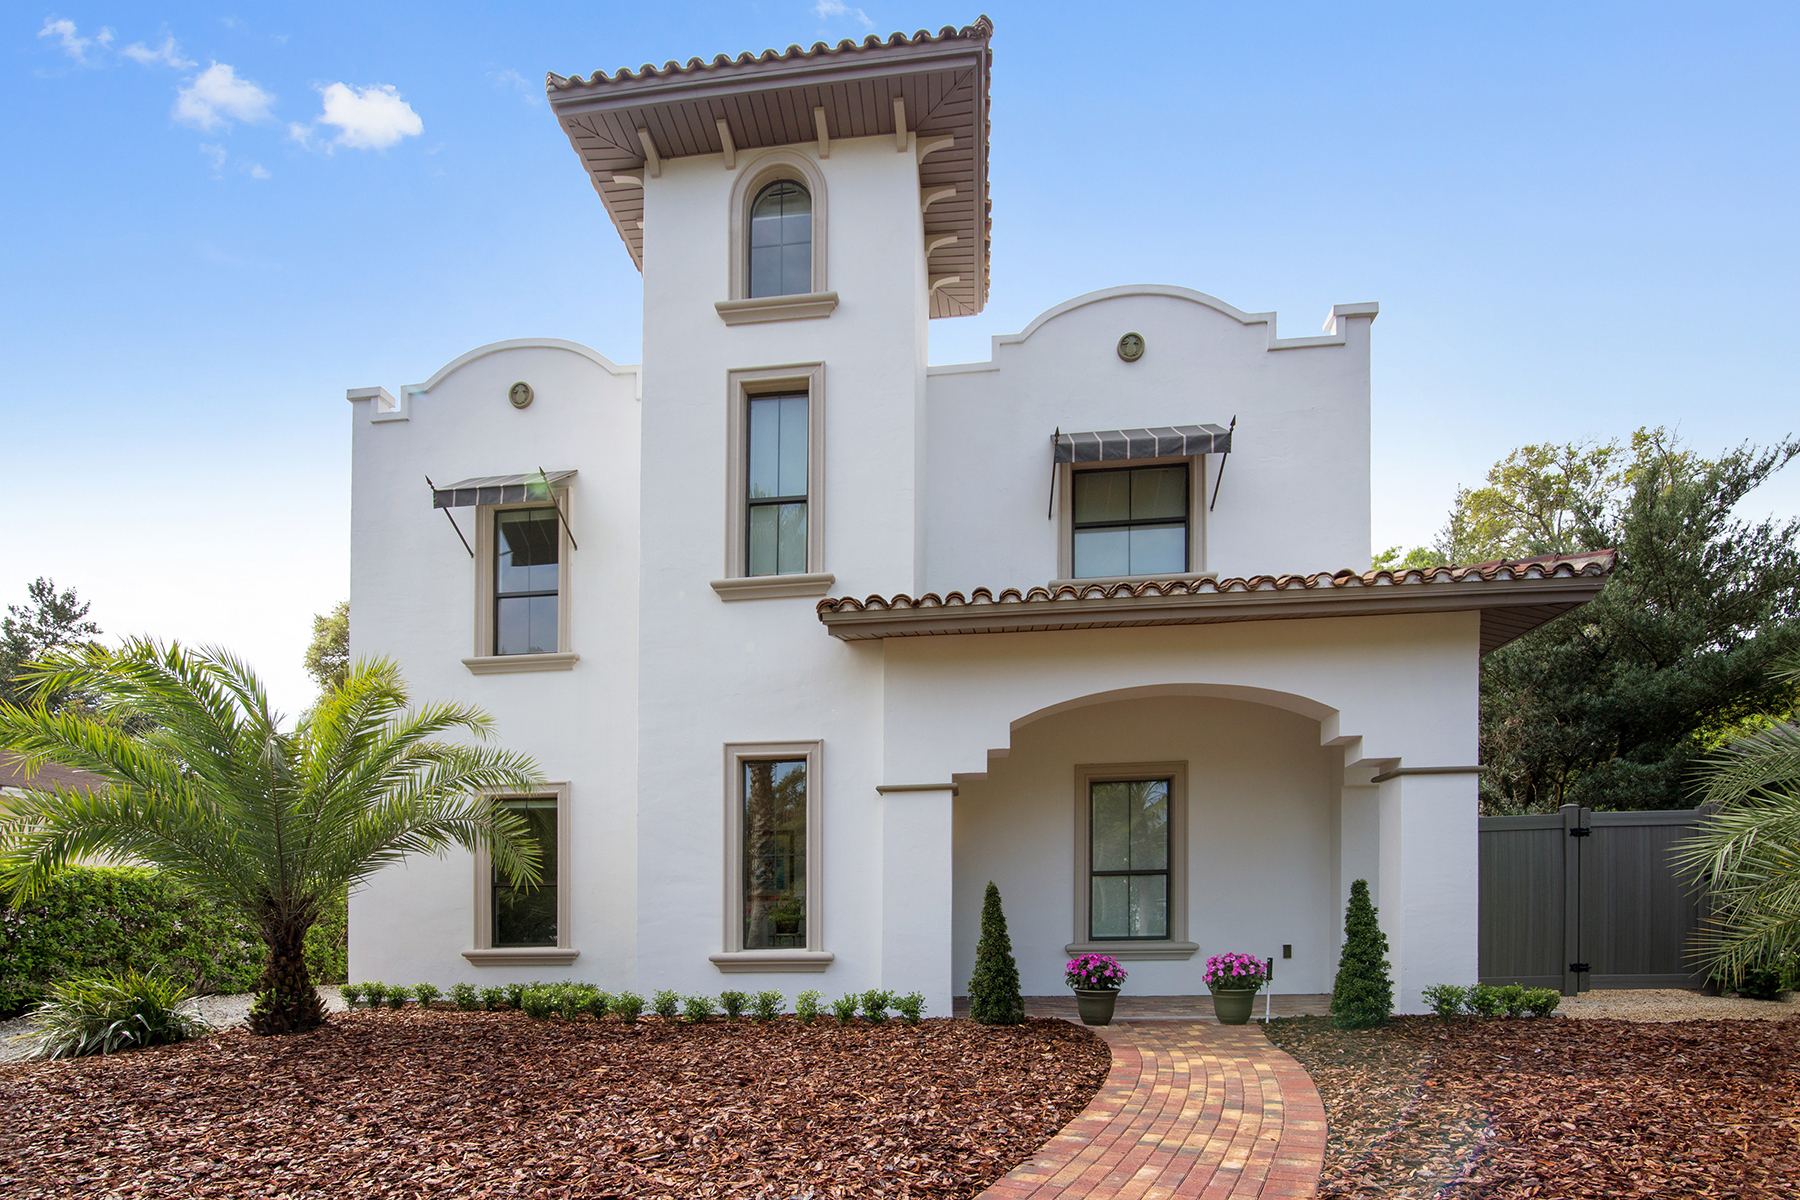 Single Family Home for Sale at Winter Park, Florida 2728 Eastern Pkwy Winter Park, Florida, 32789 United States